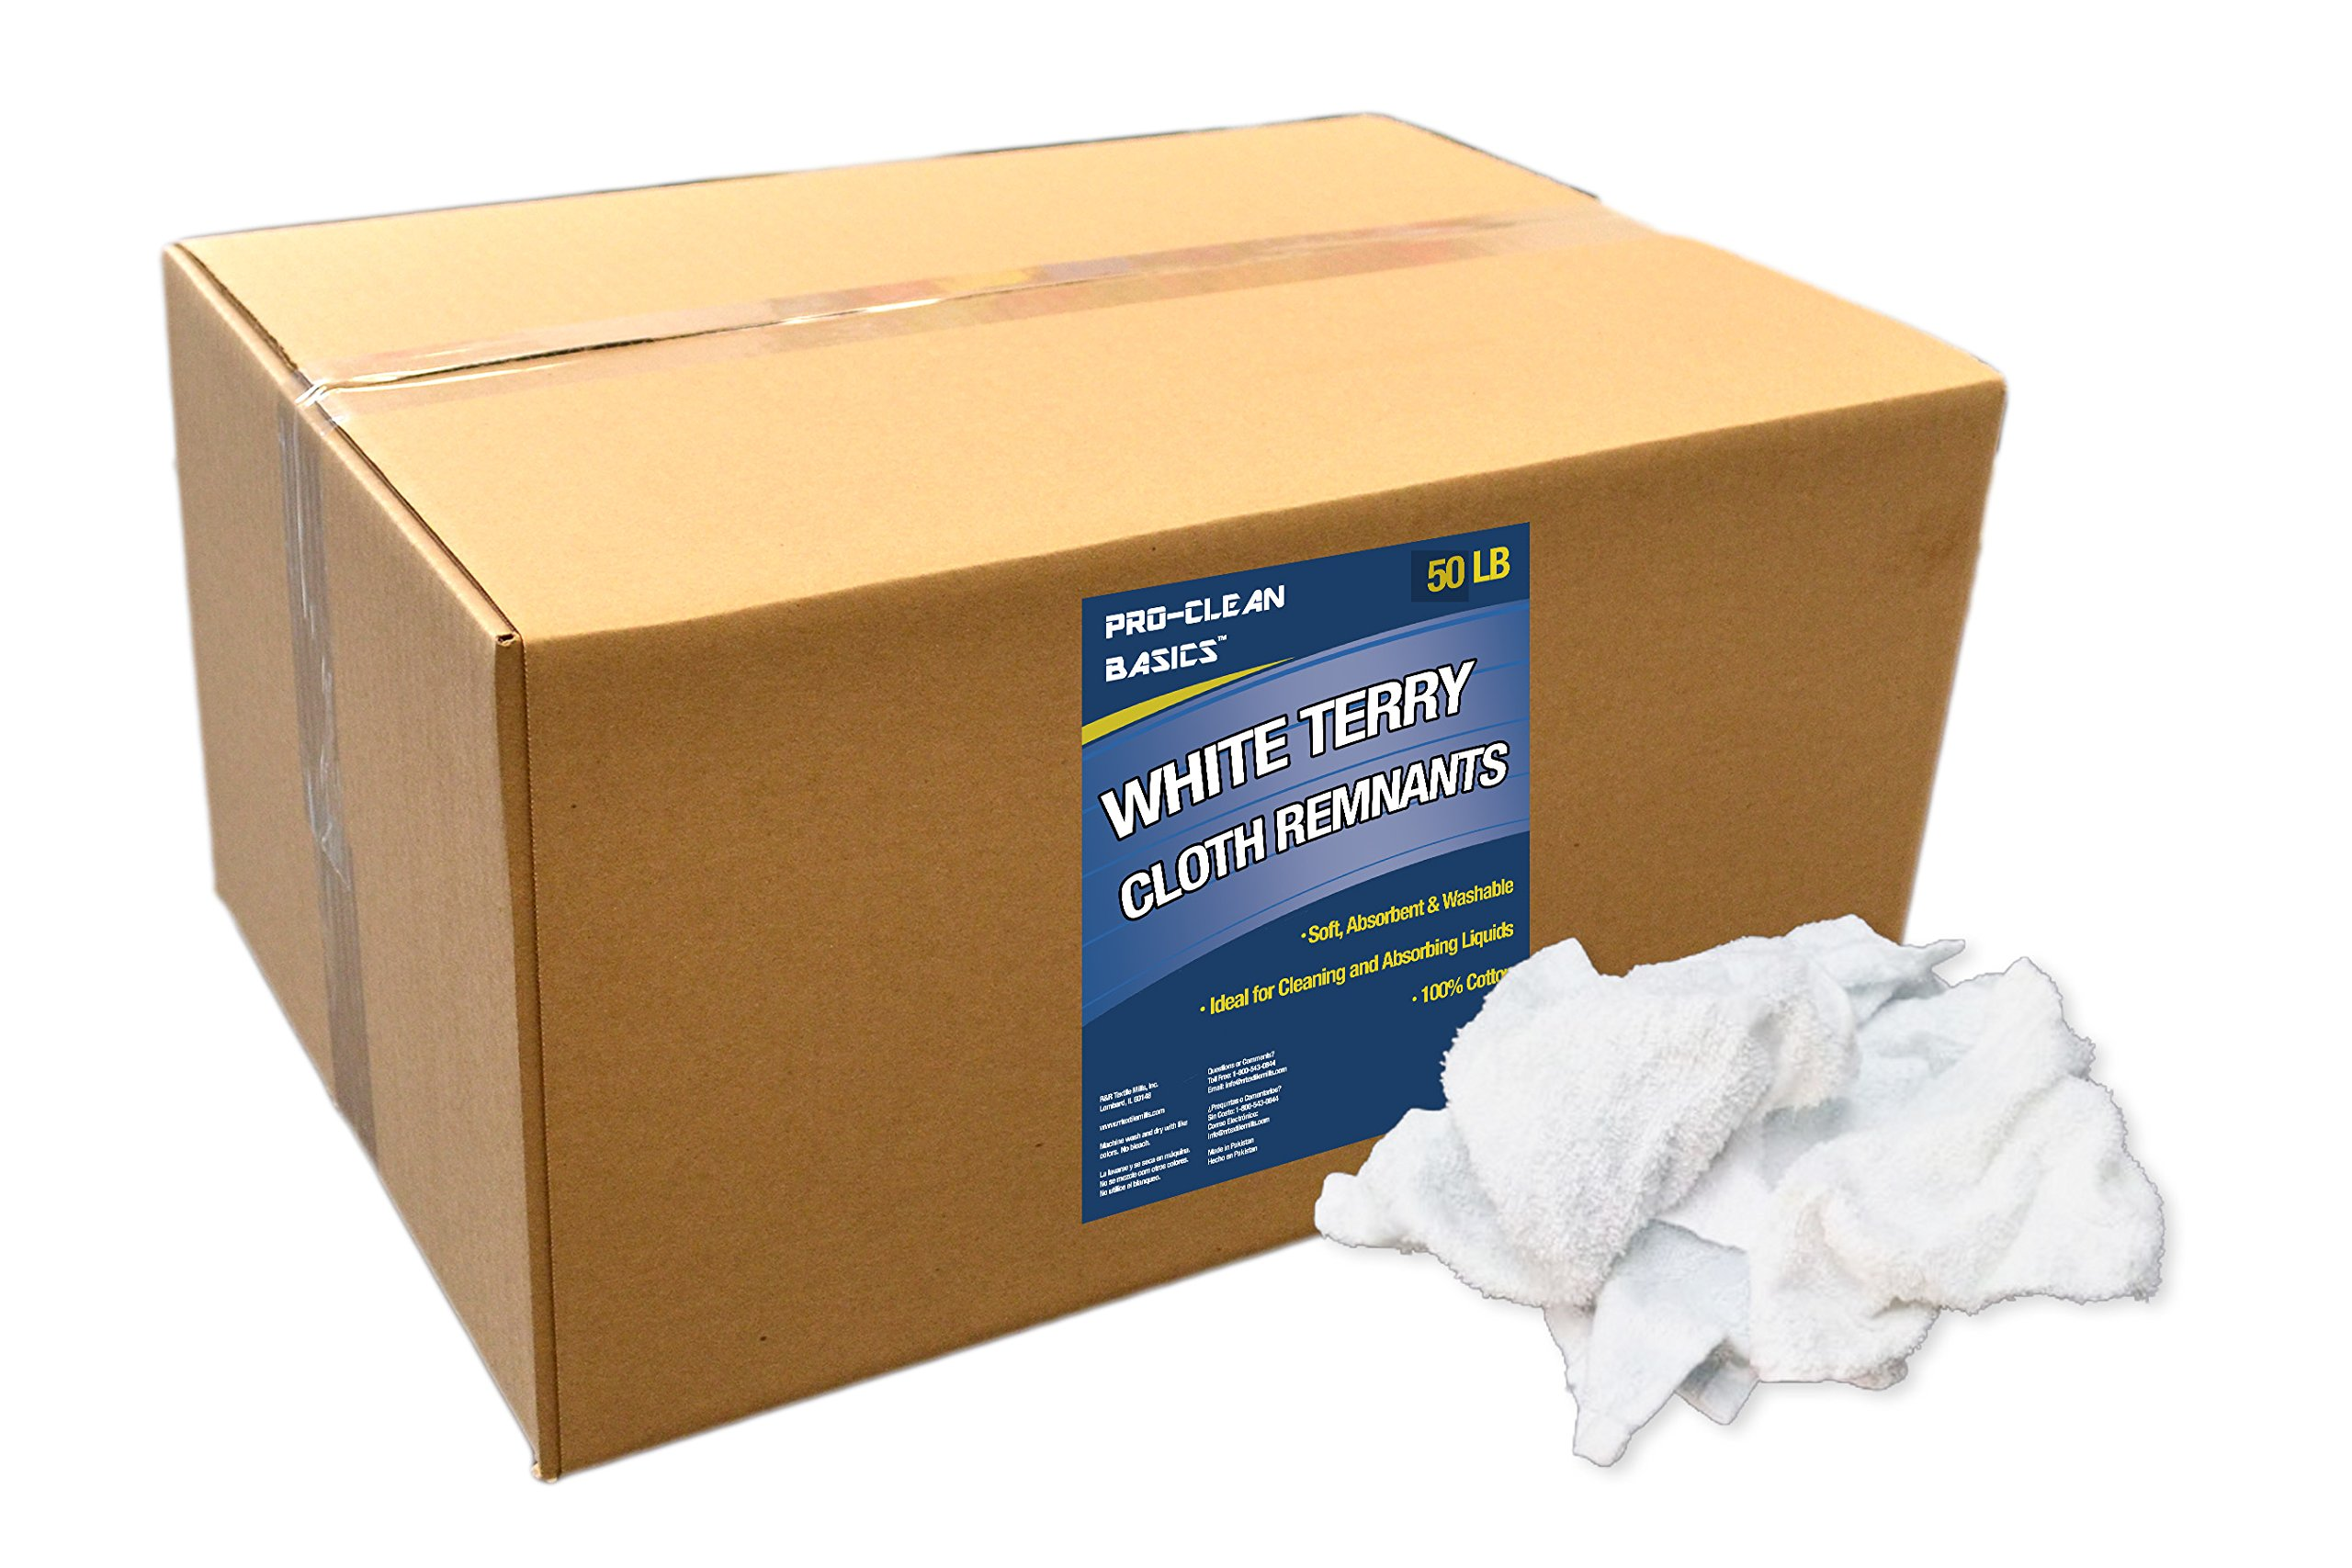 Pro-Clean Basics White Terry Cloth Rags: 50 lb. Box by Pro-Clean Basics (Image #1)